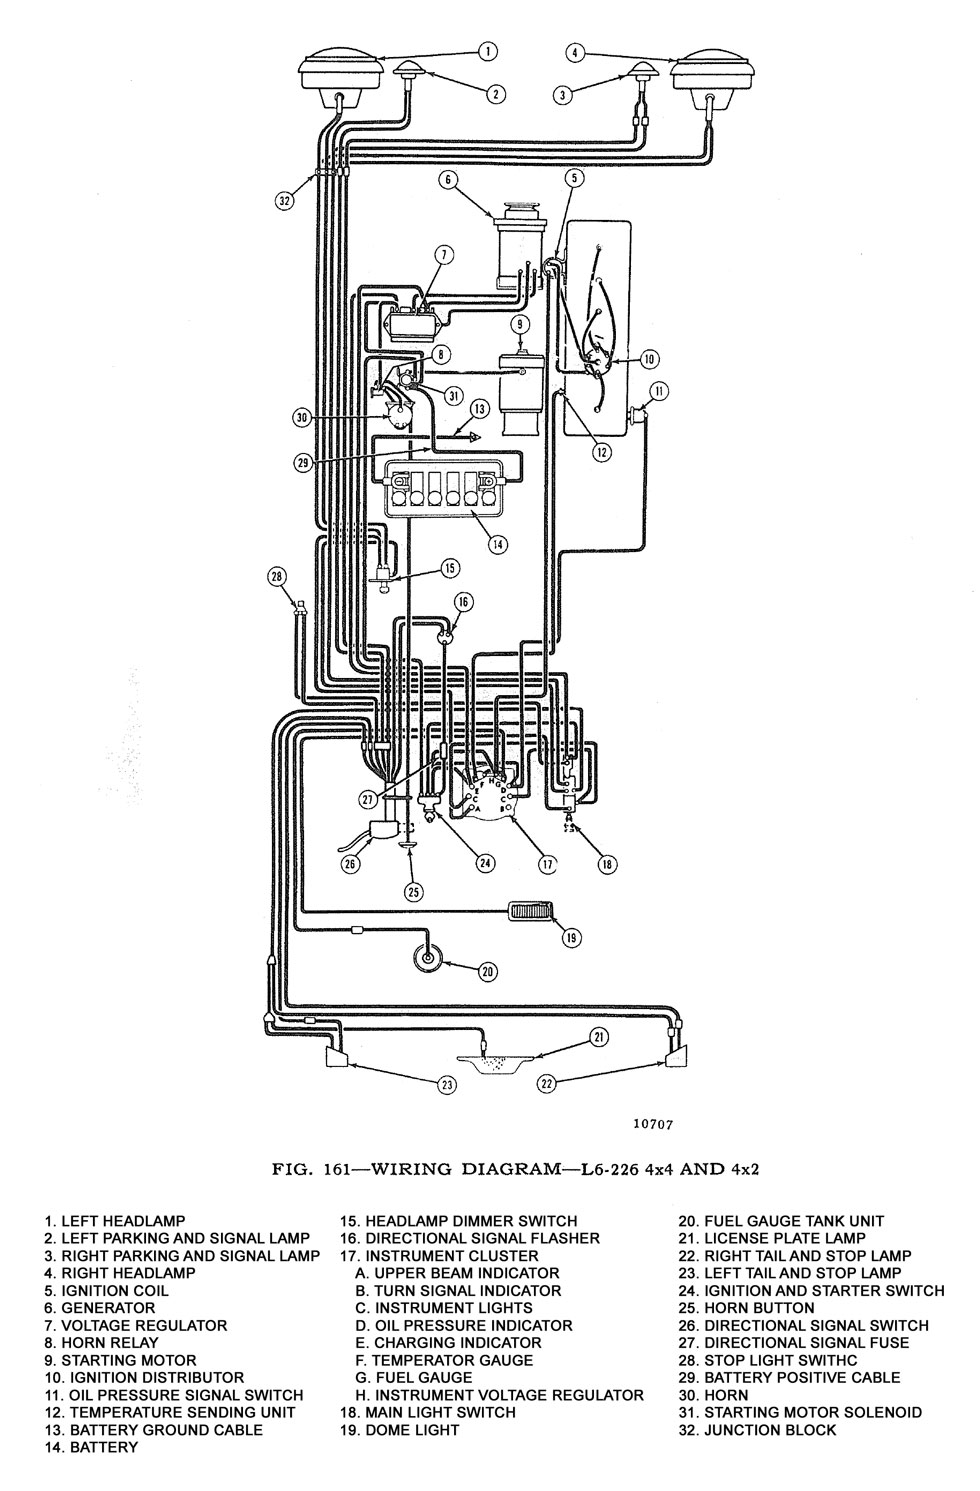 hight resolution of wiring diagram l6 226 4x4 and 4x2 willys station wagon wiring diagram